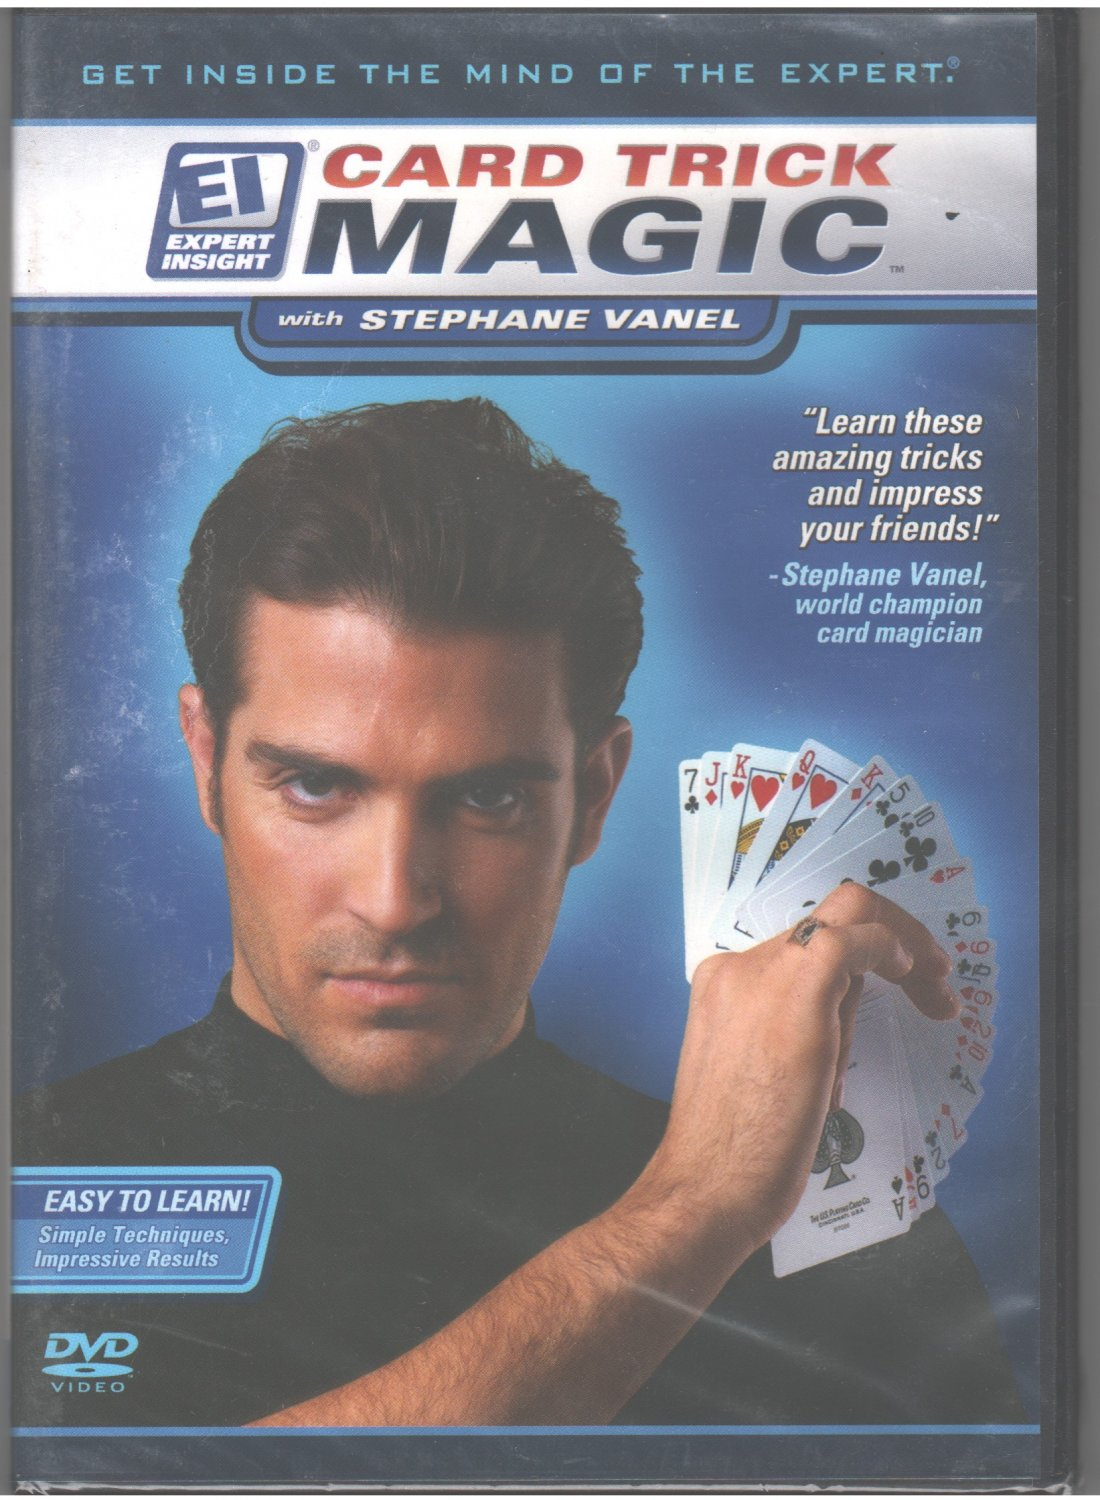 Card Trick Magic with Stephane Vanel DVD